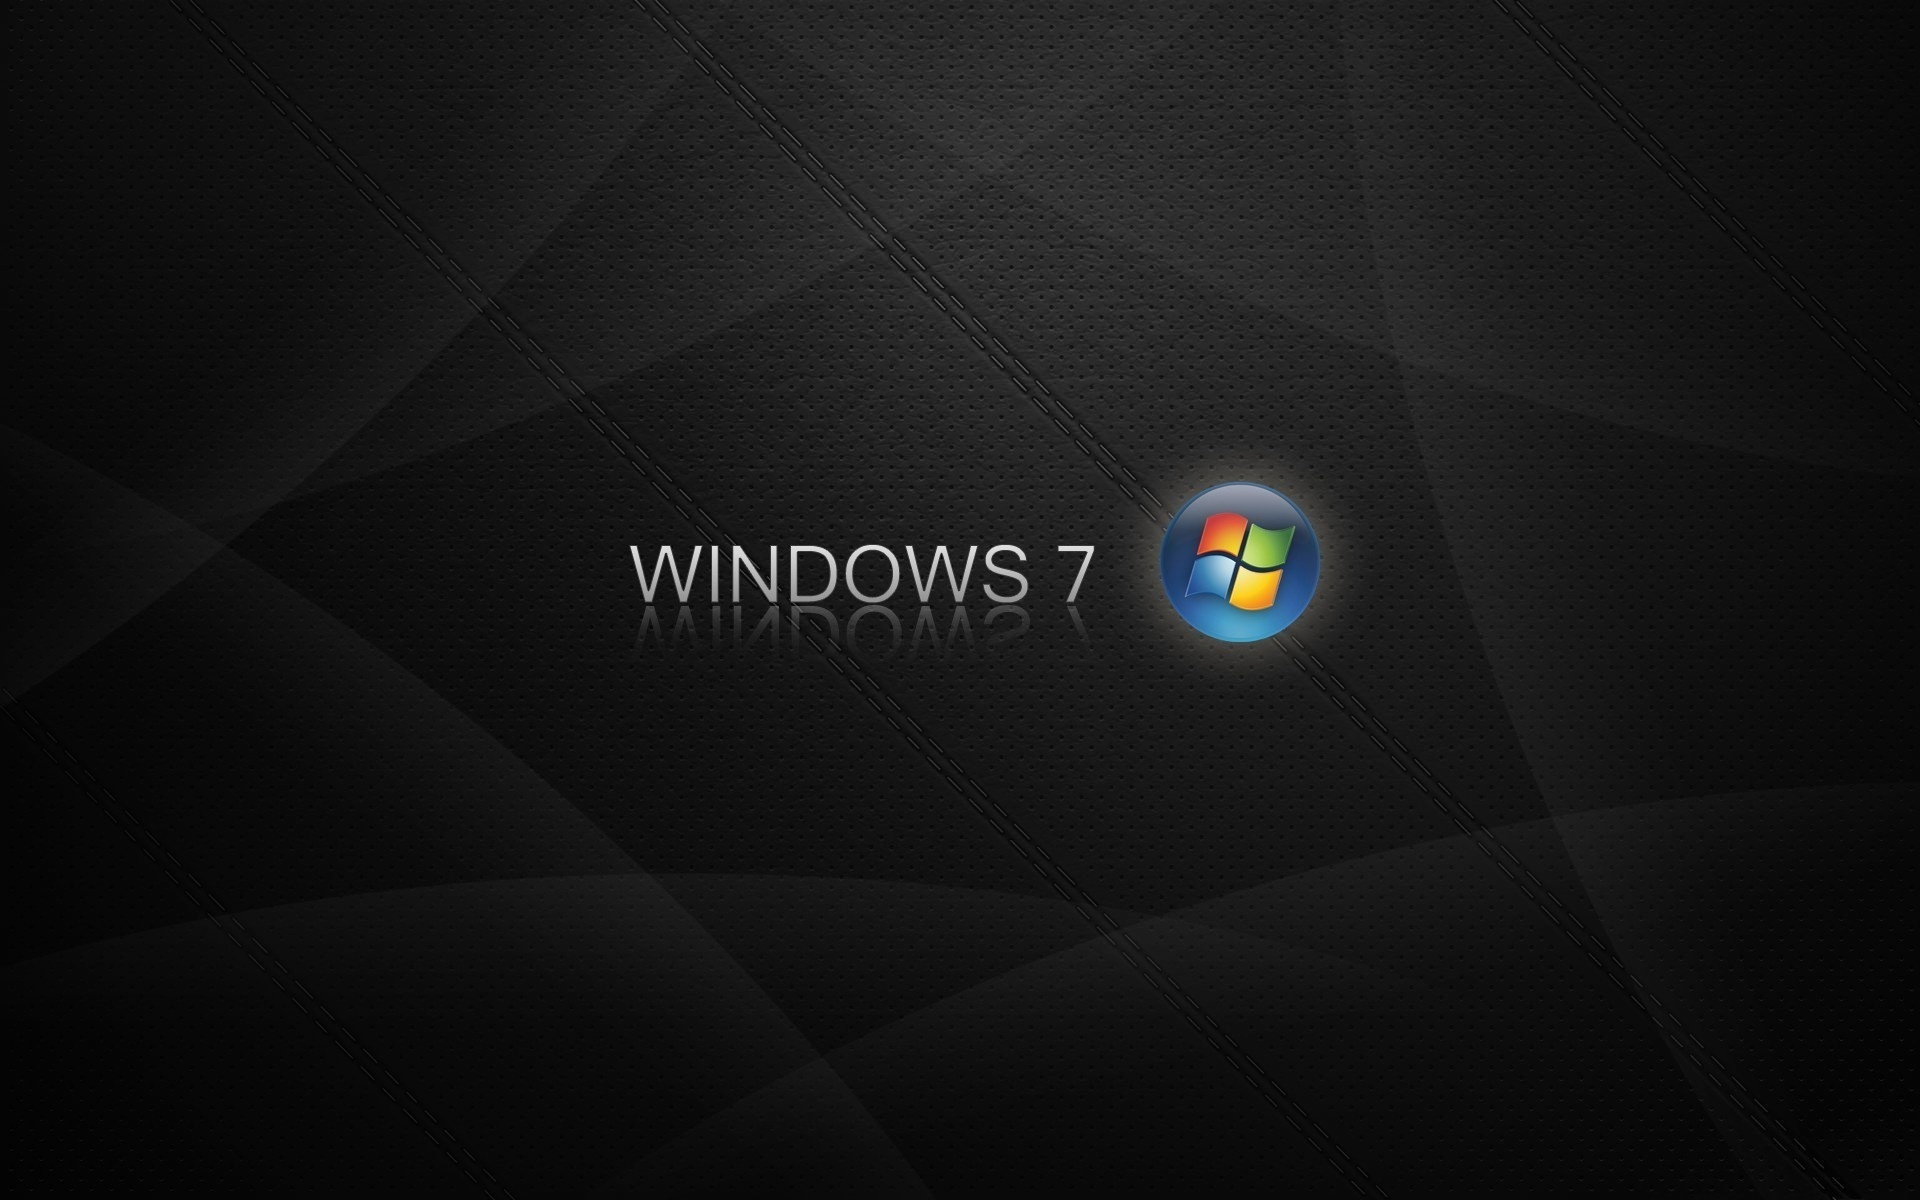 Windows 7 Background Black wallpaper   874115 1920x1200